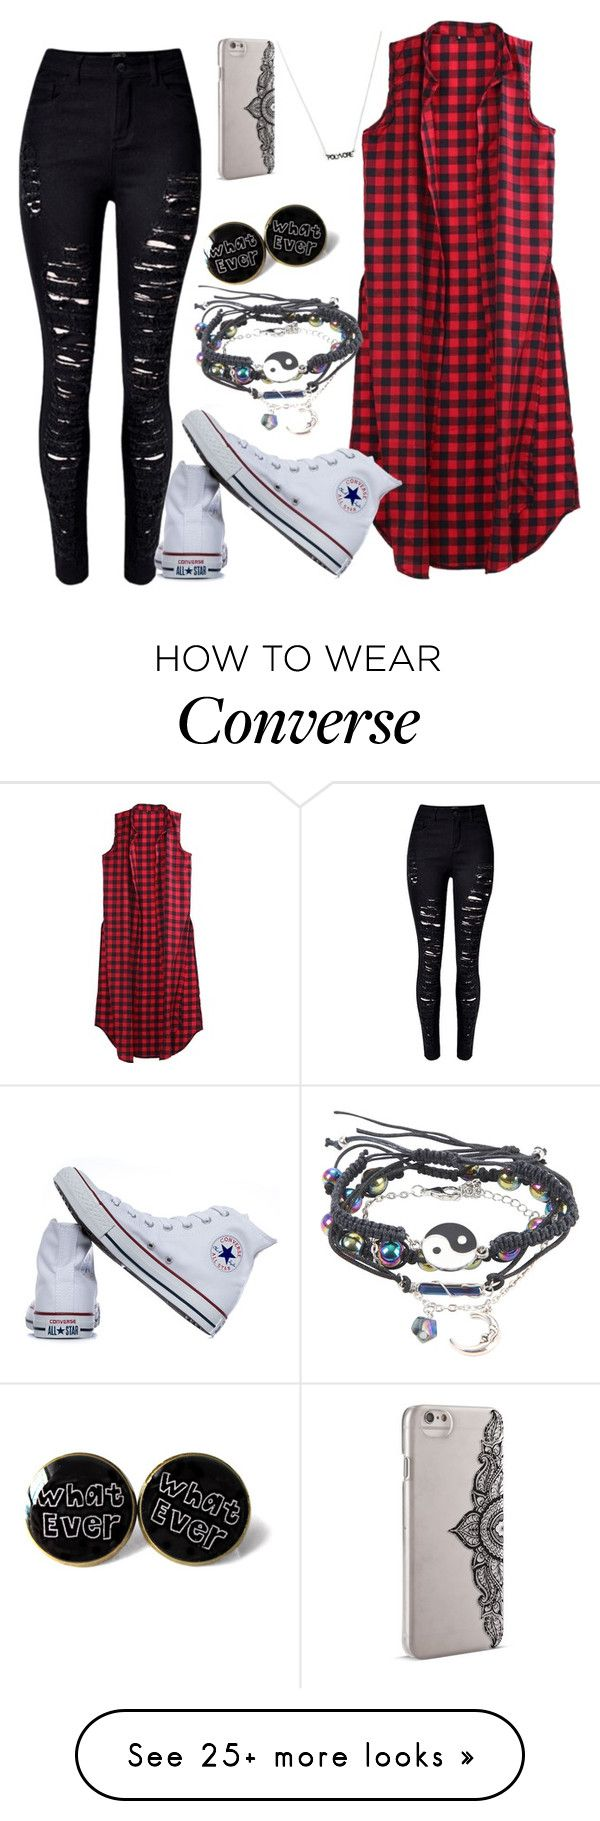 """""""Untitled #92"""" by panaitteo on Polyvore featuring Converse and Nanette Lepore"""